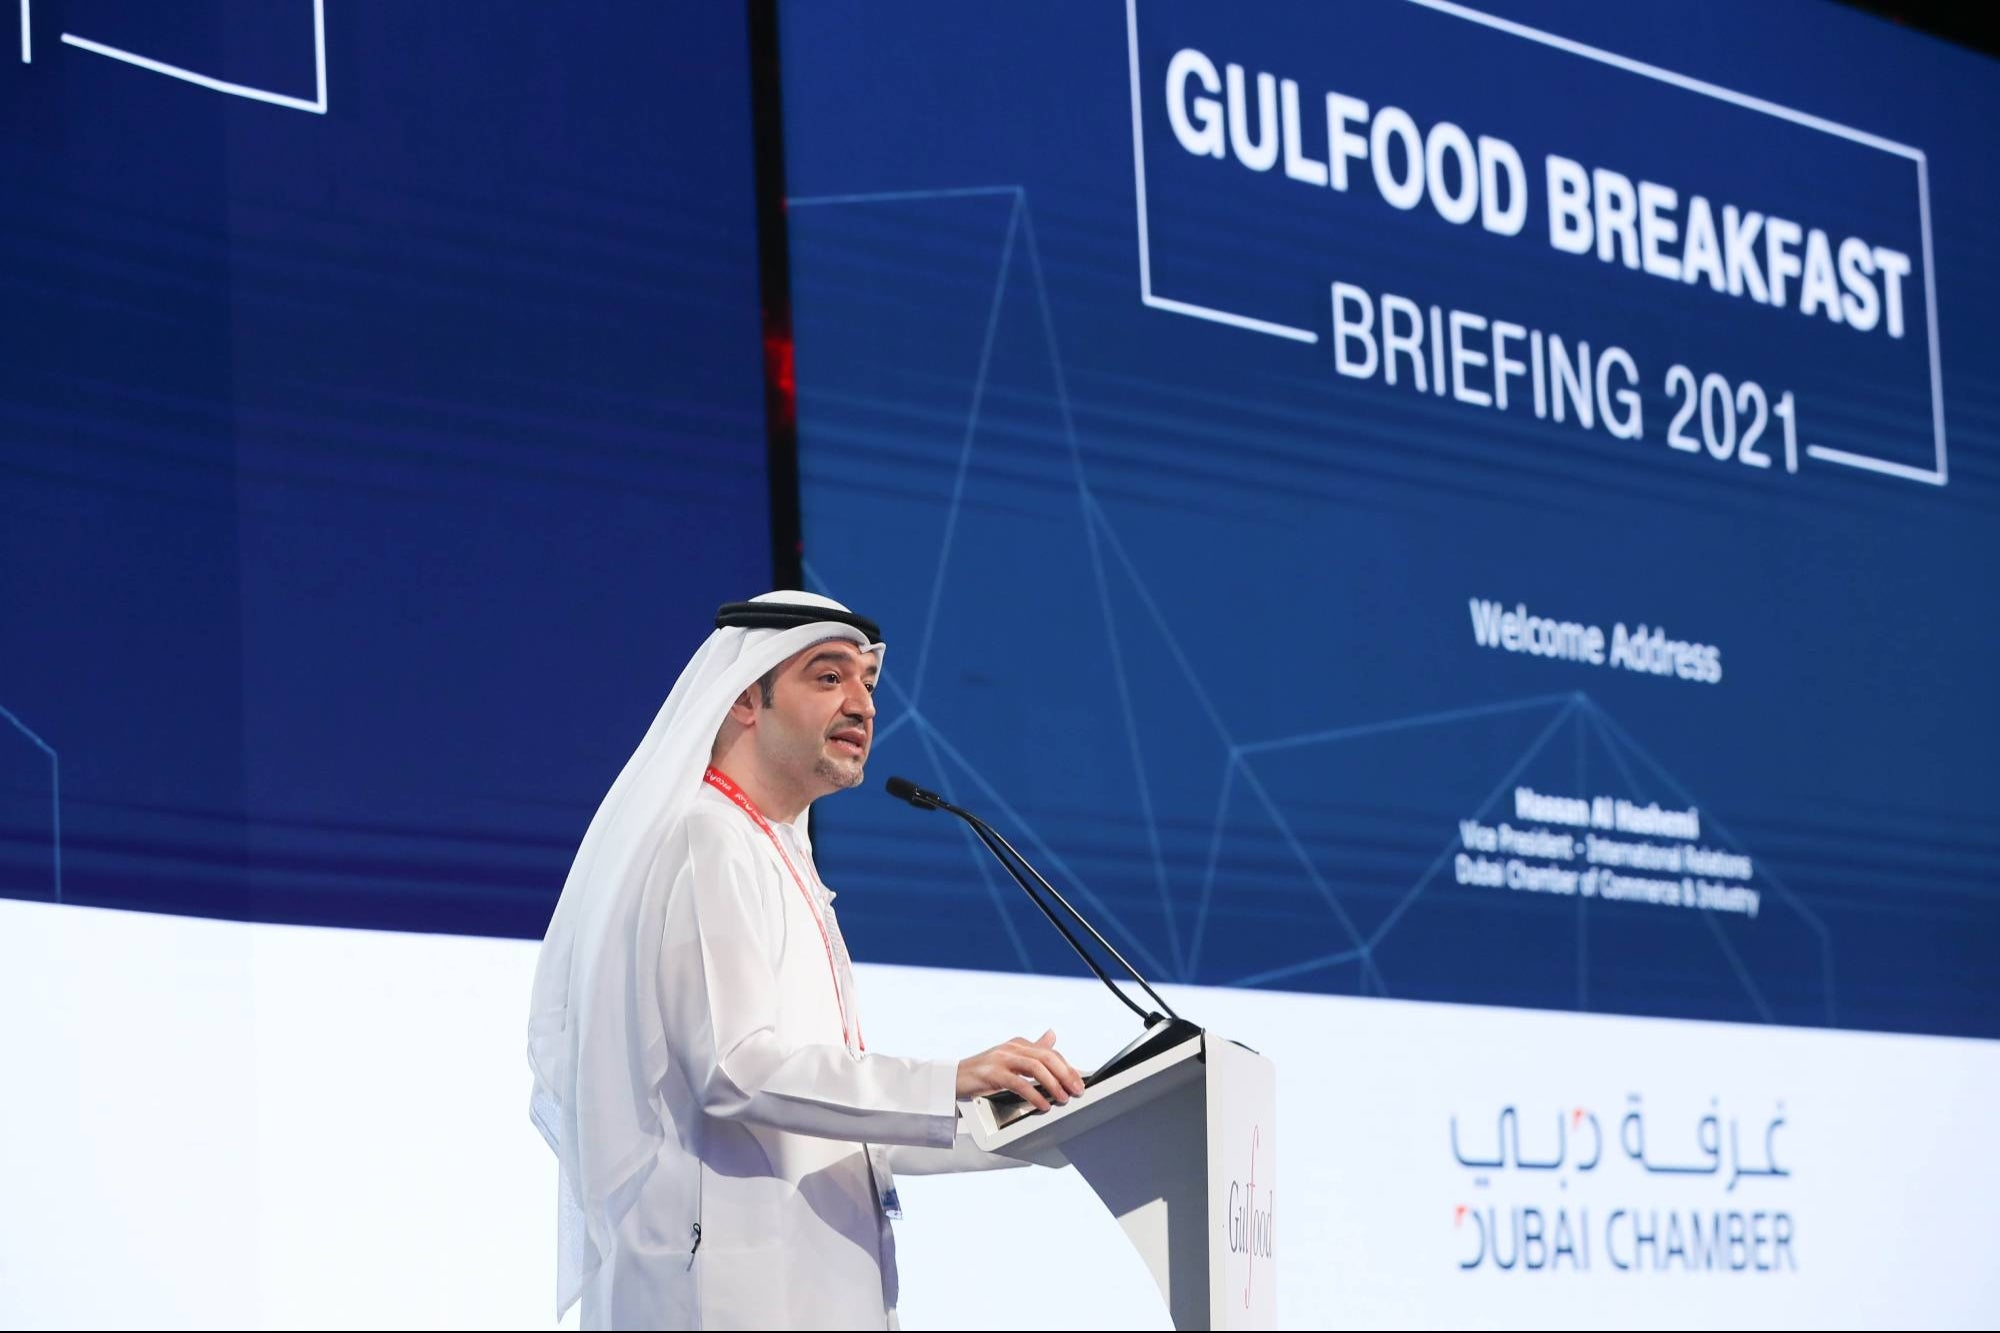 Entrepreneurs Are Well Placed To Tap Into Opportunities Presented By The UAE's Food Security Agenda: Insights From A Dubai Chamber Analysis